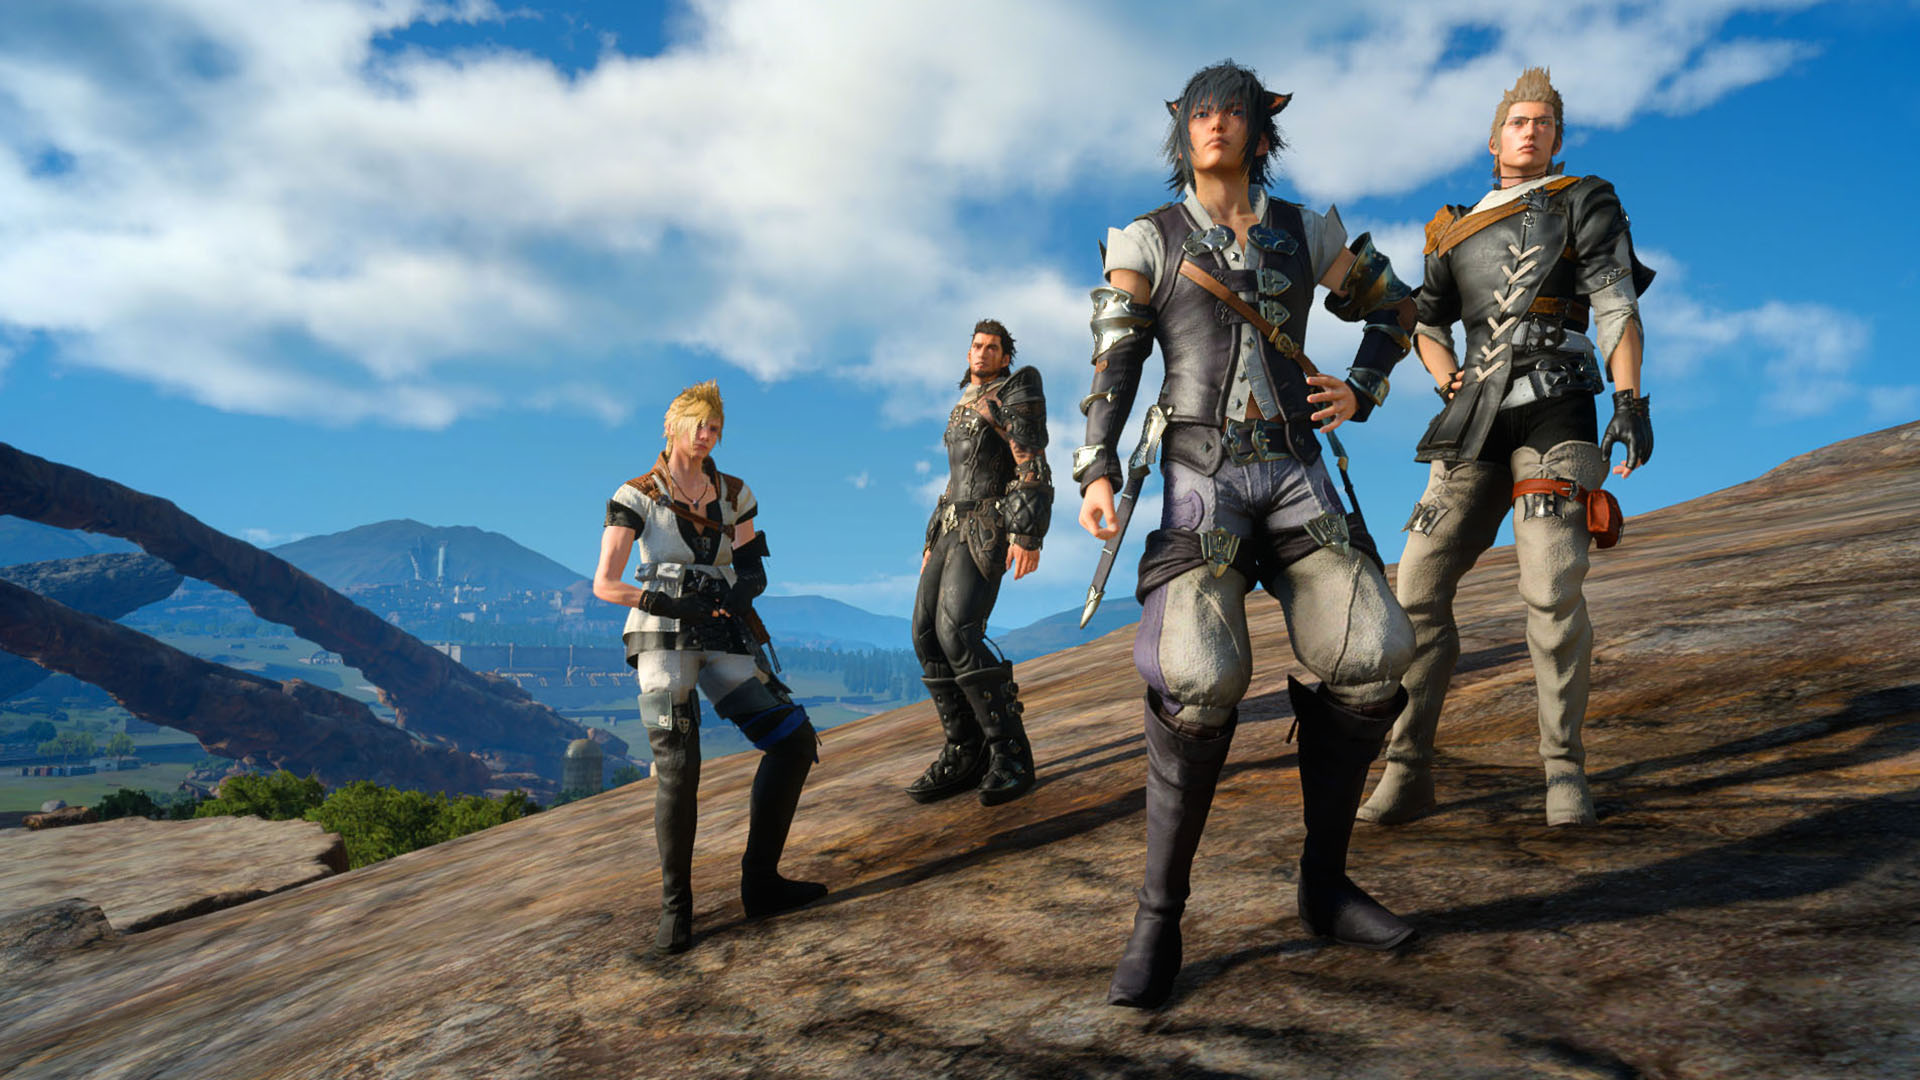 Final Fantasy XV x Final Fantasy XIV collaboration quest